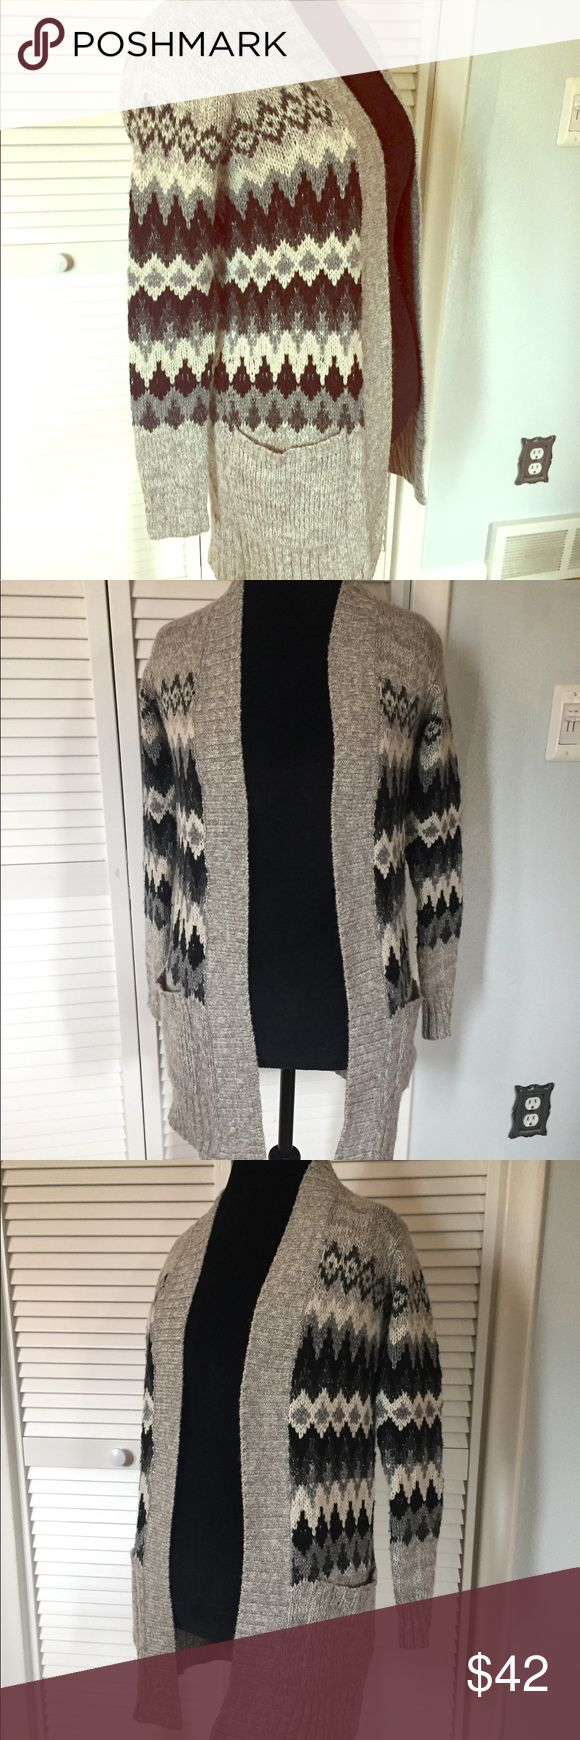 "EUC American Eagle Gray Tribal Print Cardigan EUC American Eagle Gray Tribal Print Cardigan. This long open Cardigan measures 30"" from shoulder to hem. The gray and black tribal print is on trend and the large front pockets are a nice feature. Very warm and comfortable and in great condition. Size XS but fits more like a Small to medium. American Eagle Outfitters Sweaters Cardigans"